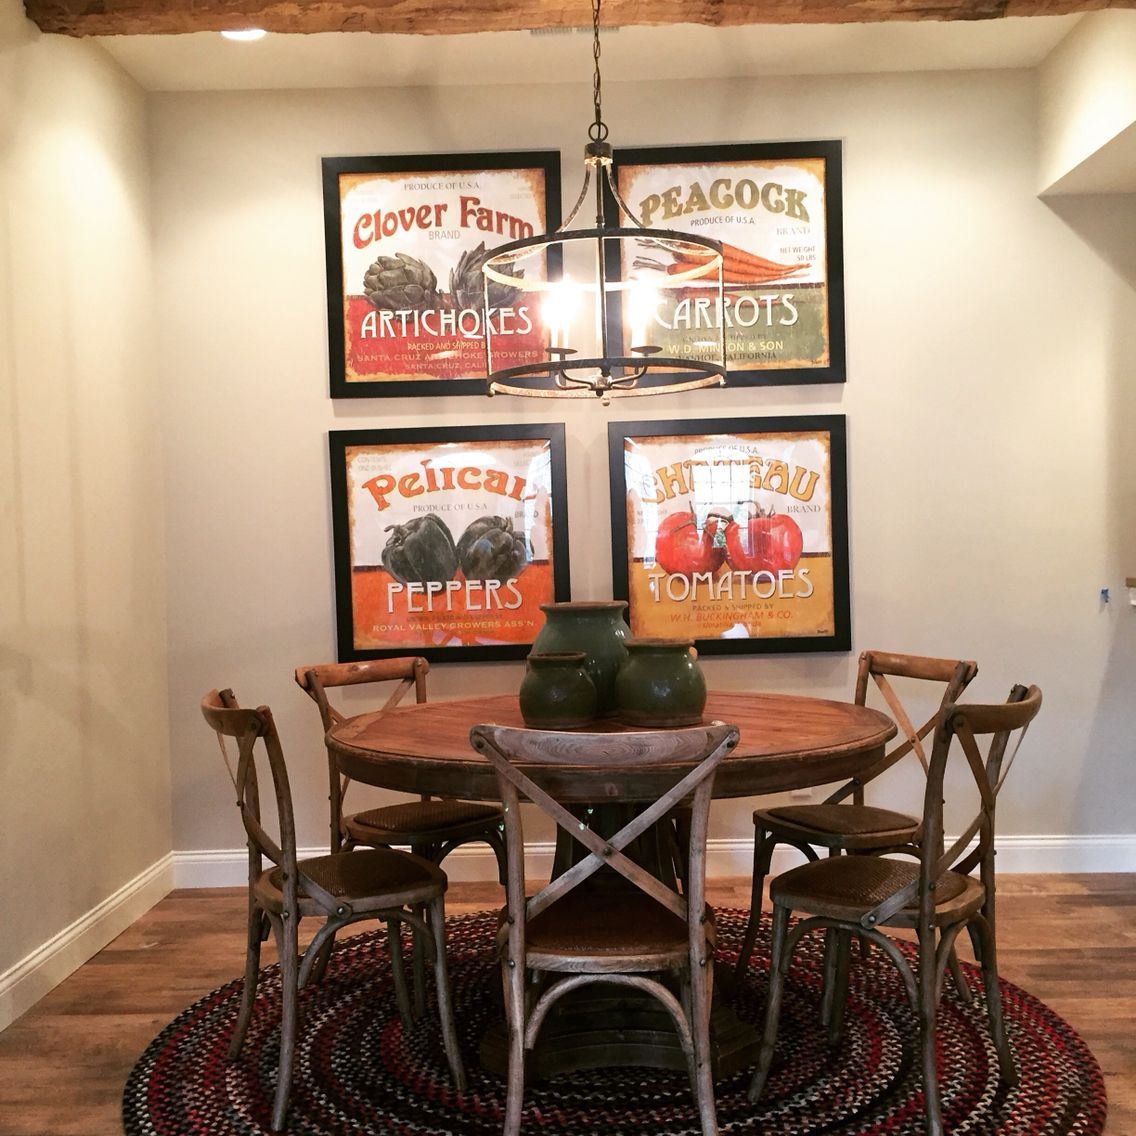 A great look with fabulous oversized art!